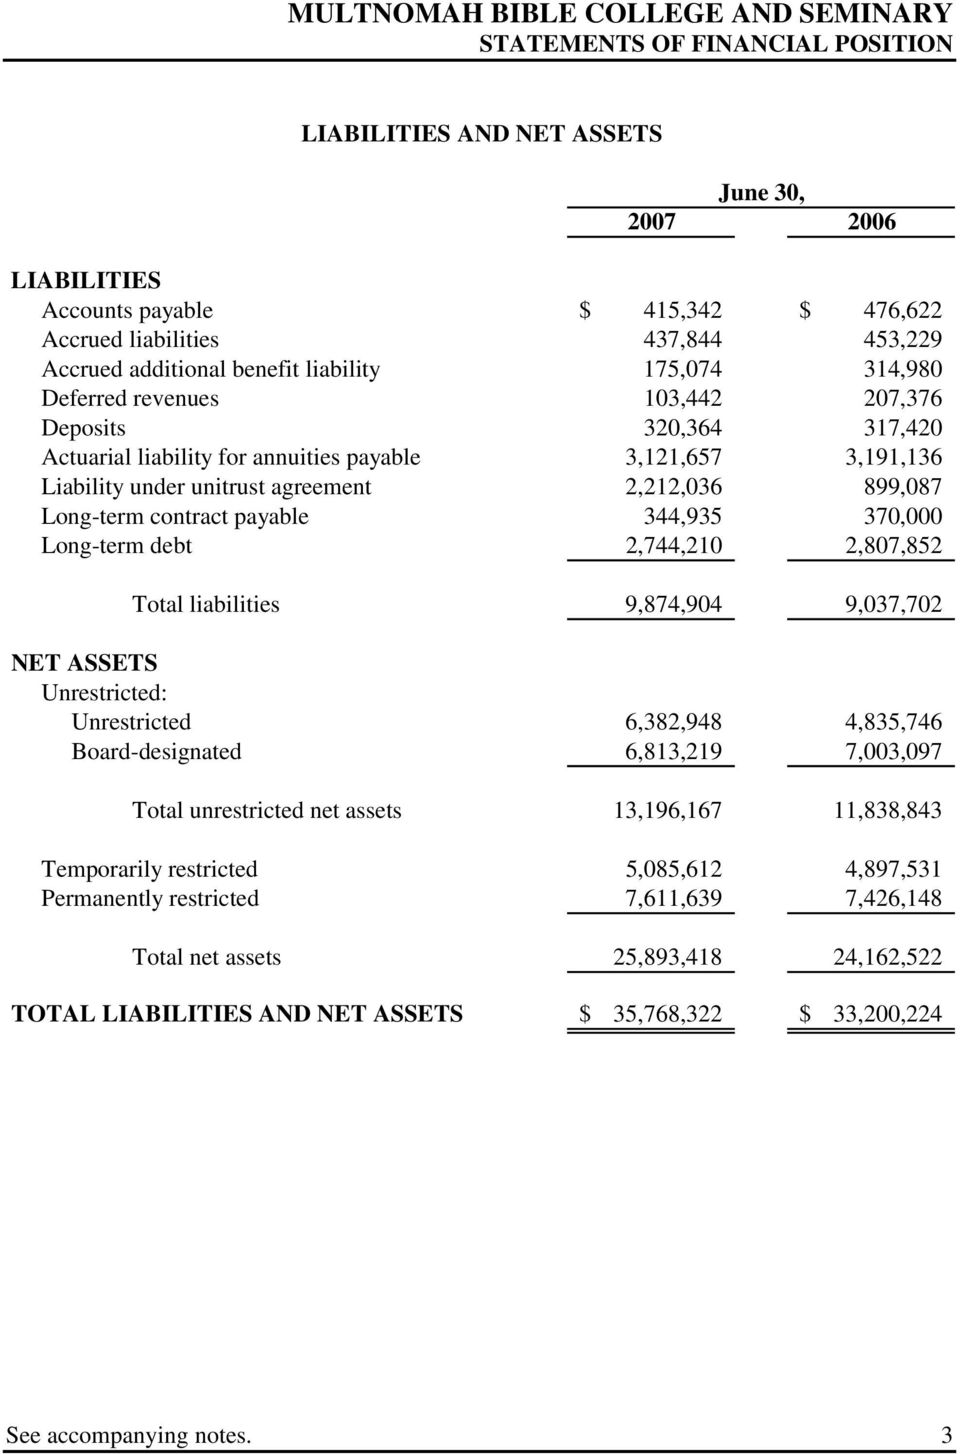 contract payable 344,935 370,000 Long-term debt 2,744,210 2,807,852 Total liabilities 9,874,904 9,037,702 NET ASSETS Unrestricted: Unrestricted 6,382,948 4,835,746 Board-designated 6,813,219